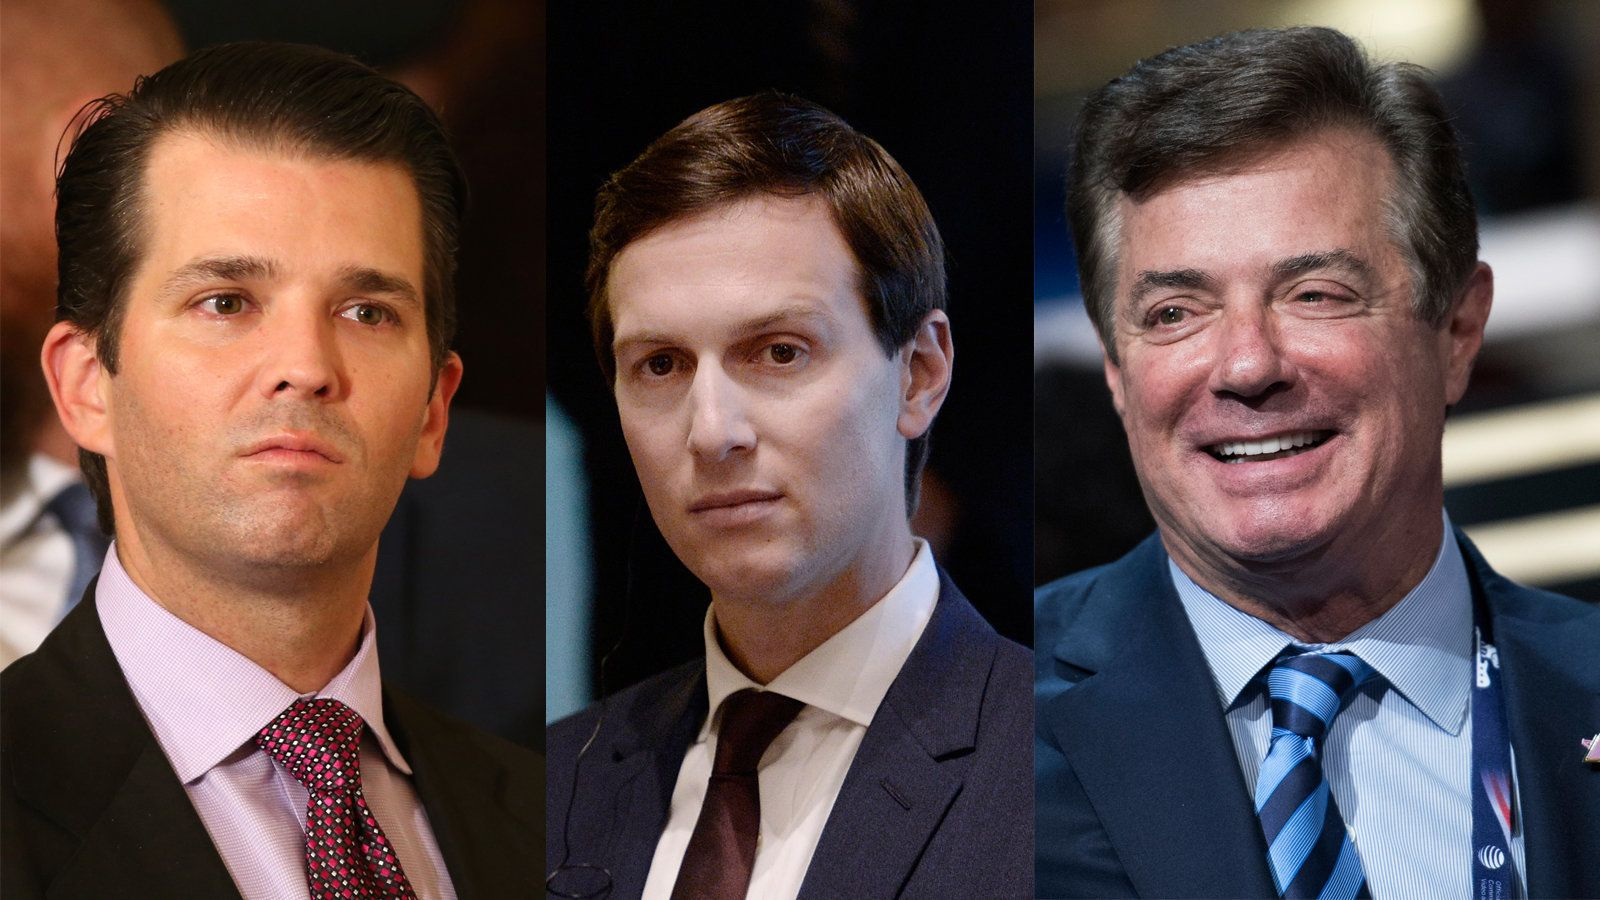 Donald Trump Jr., Jared Kushner, Paul Manafort (left to right)